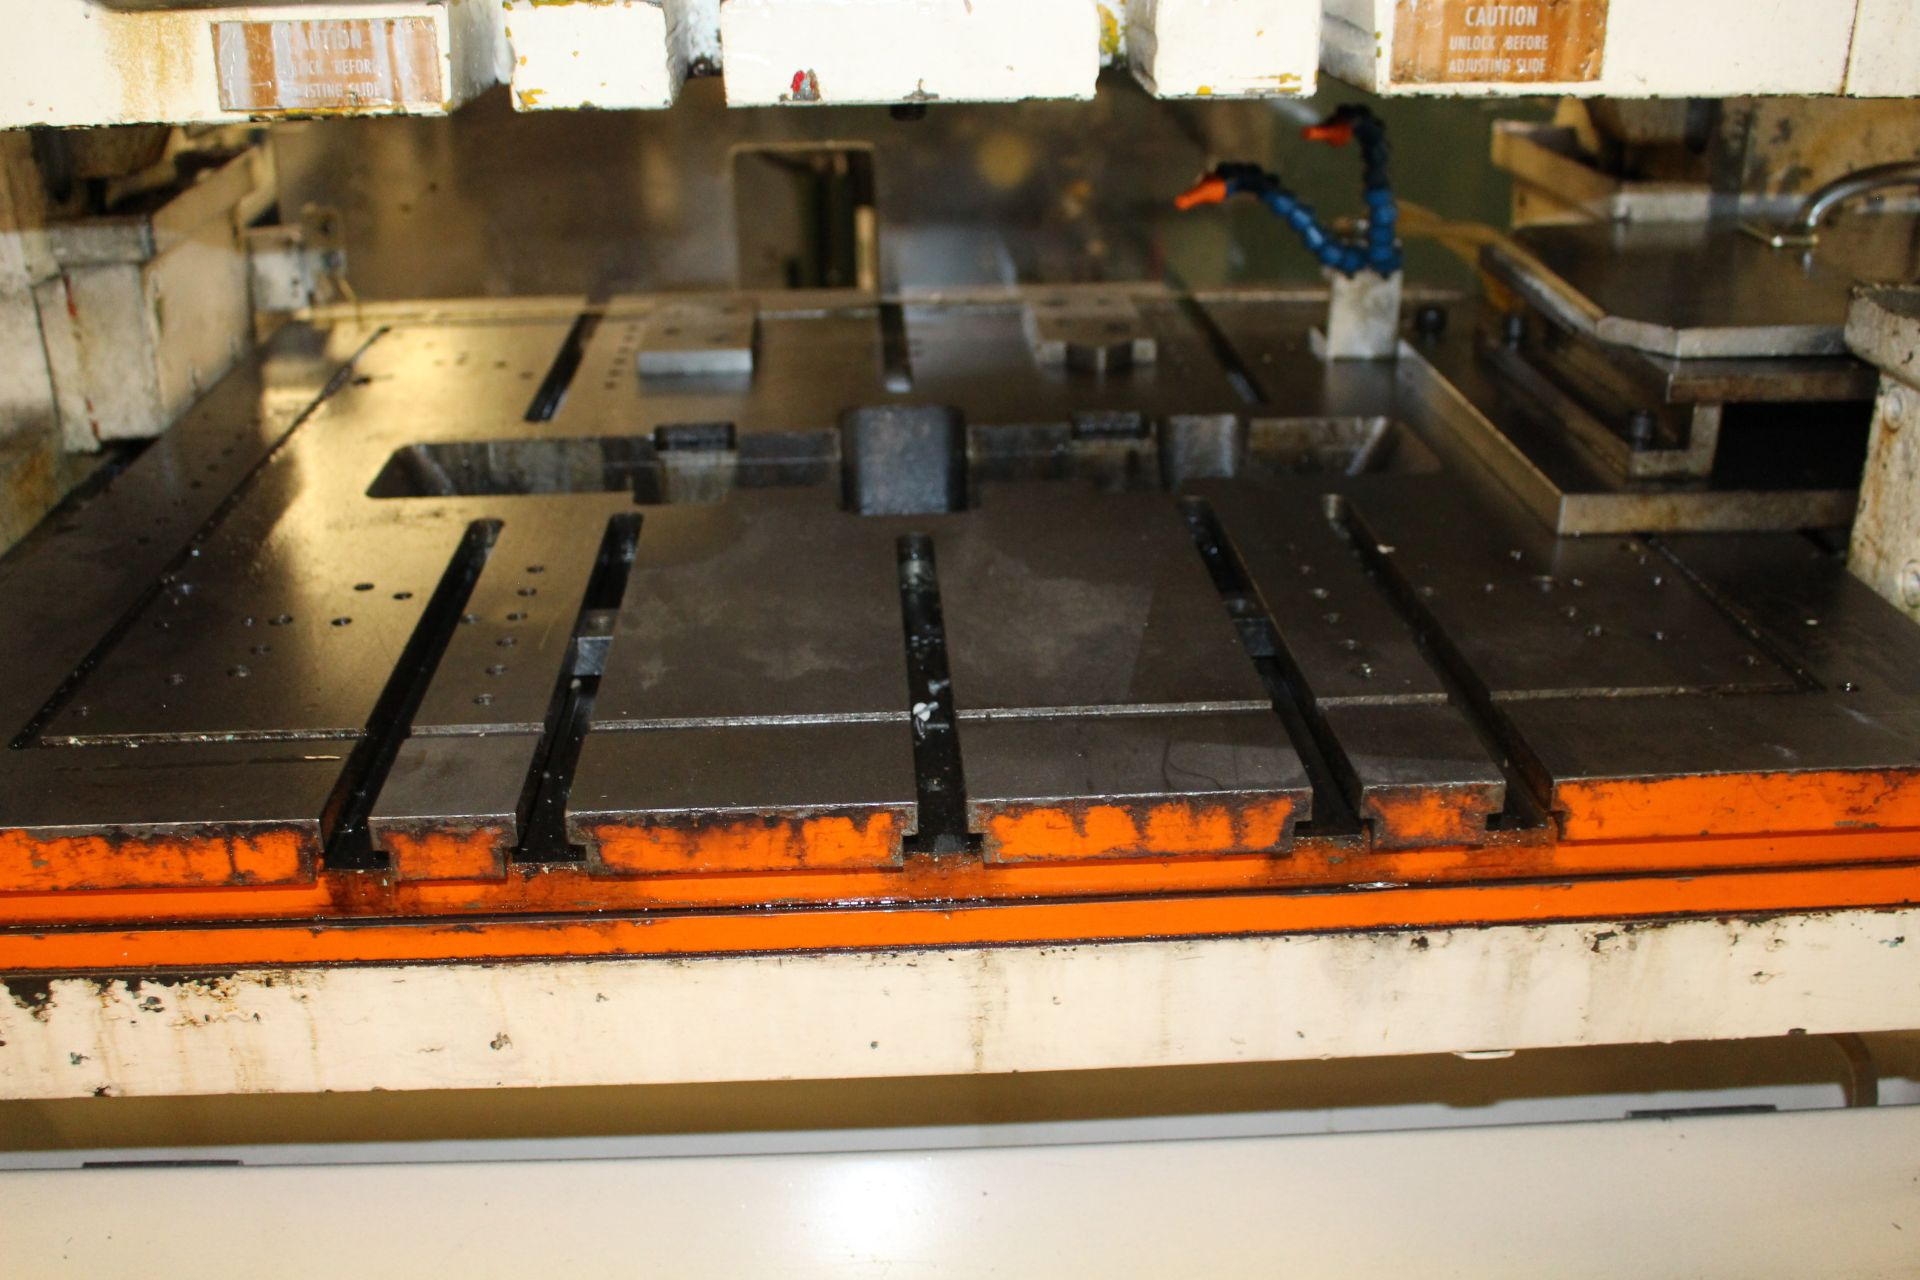 """MINSTER MODEL PM2-30-30 HIGH SPEED PUNCH PRESS, 30 TON CAPACITY, 30"""" X 20"""" BOLSTER, 0-1,000 SPM, 1- - Image 8 of 18"""